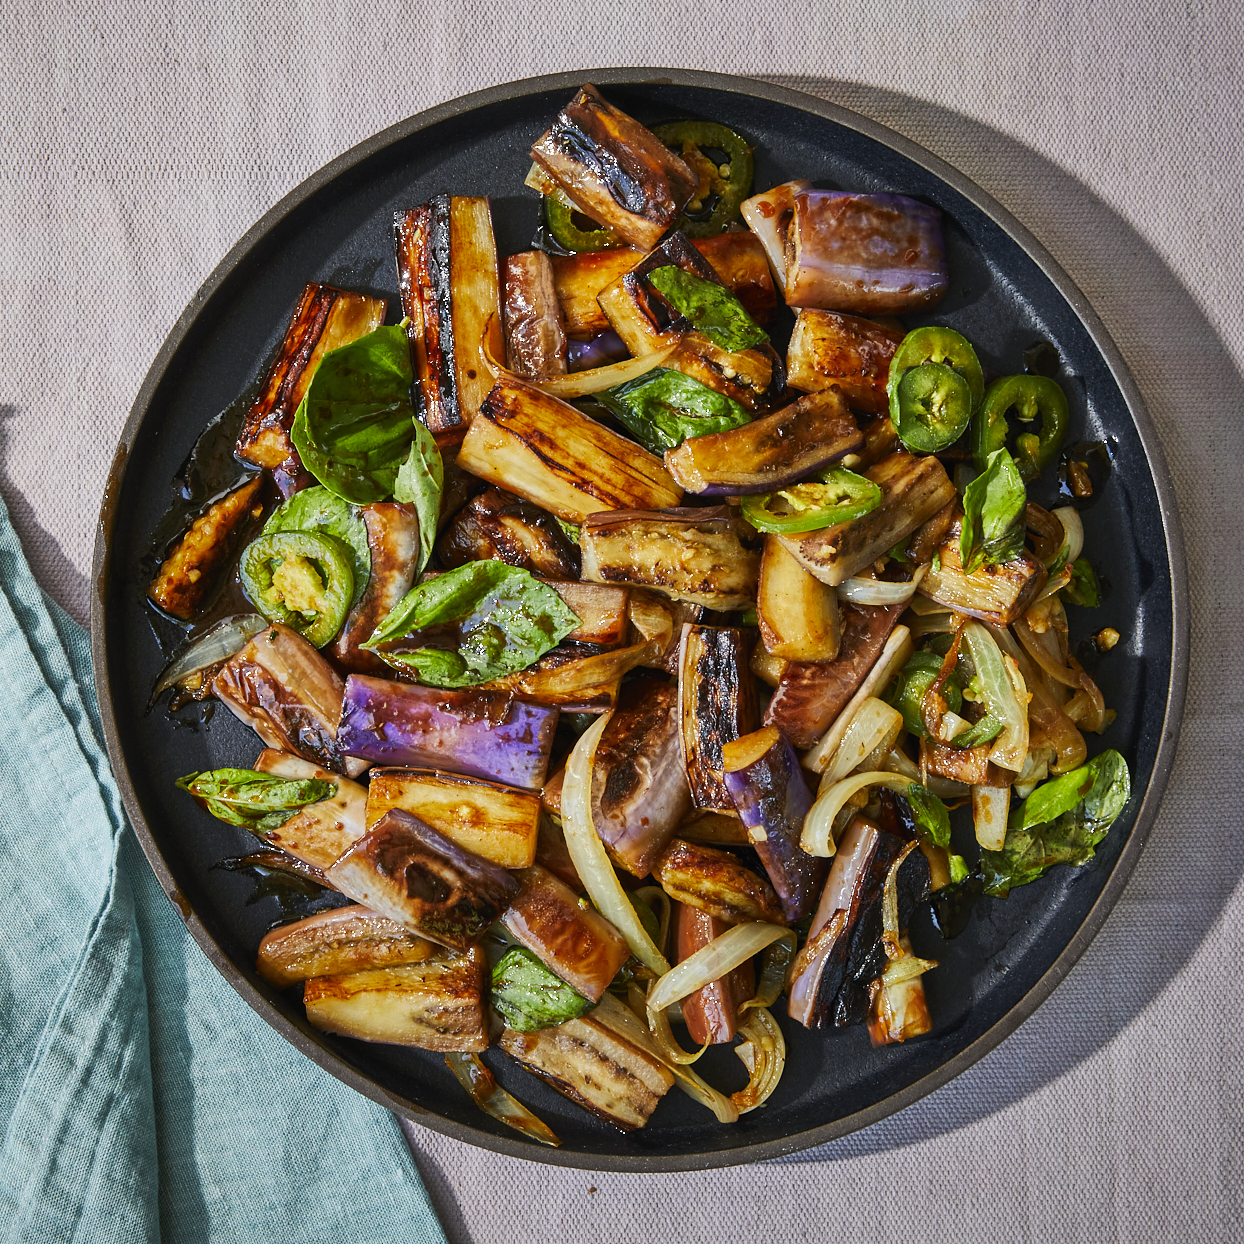 Easy Eggplant Stir-Fry Trusted Brands